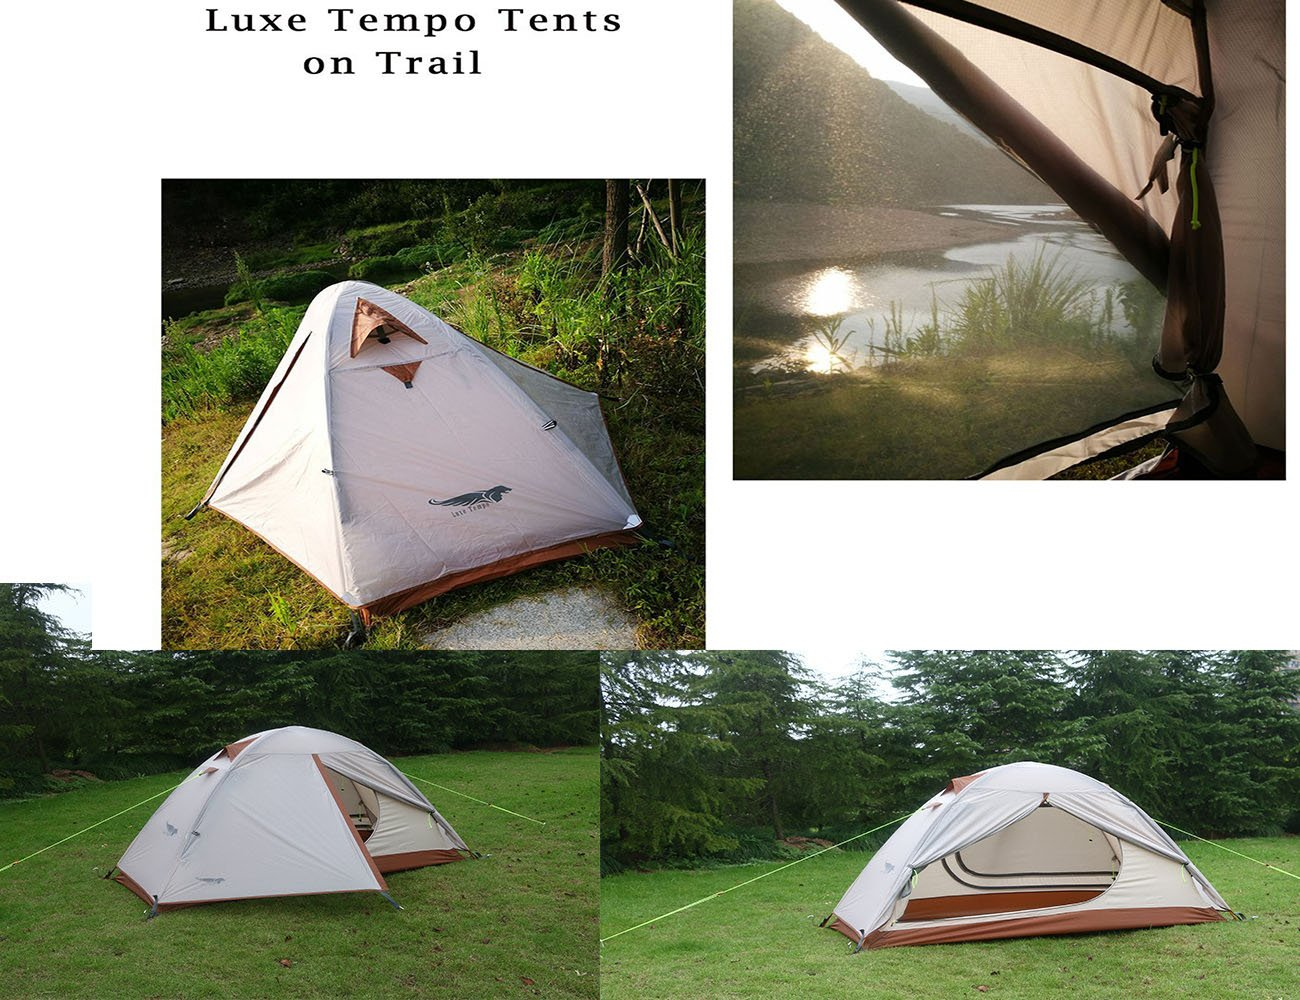 Luxe Tempo Single 1 Person Tent for Camping with Footprint